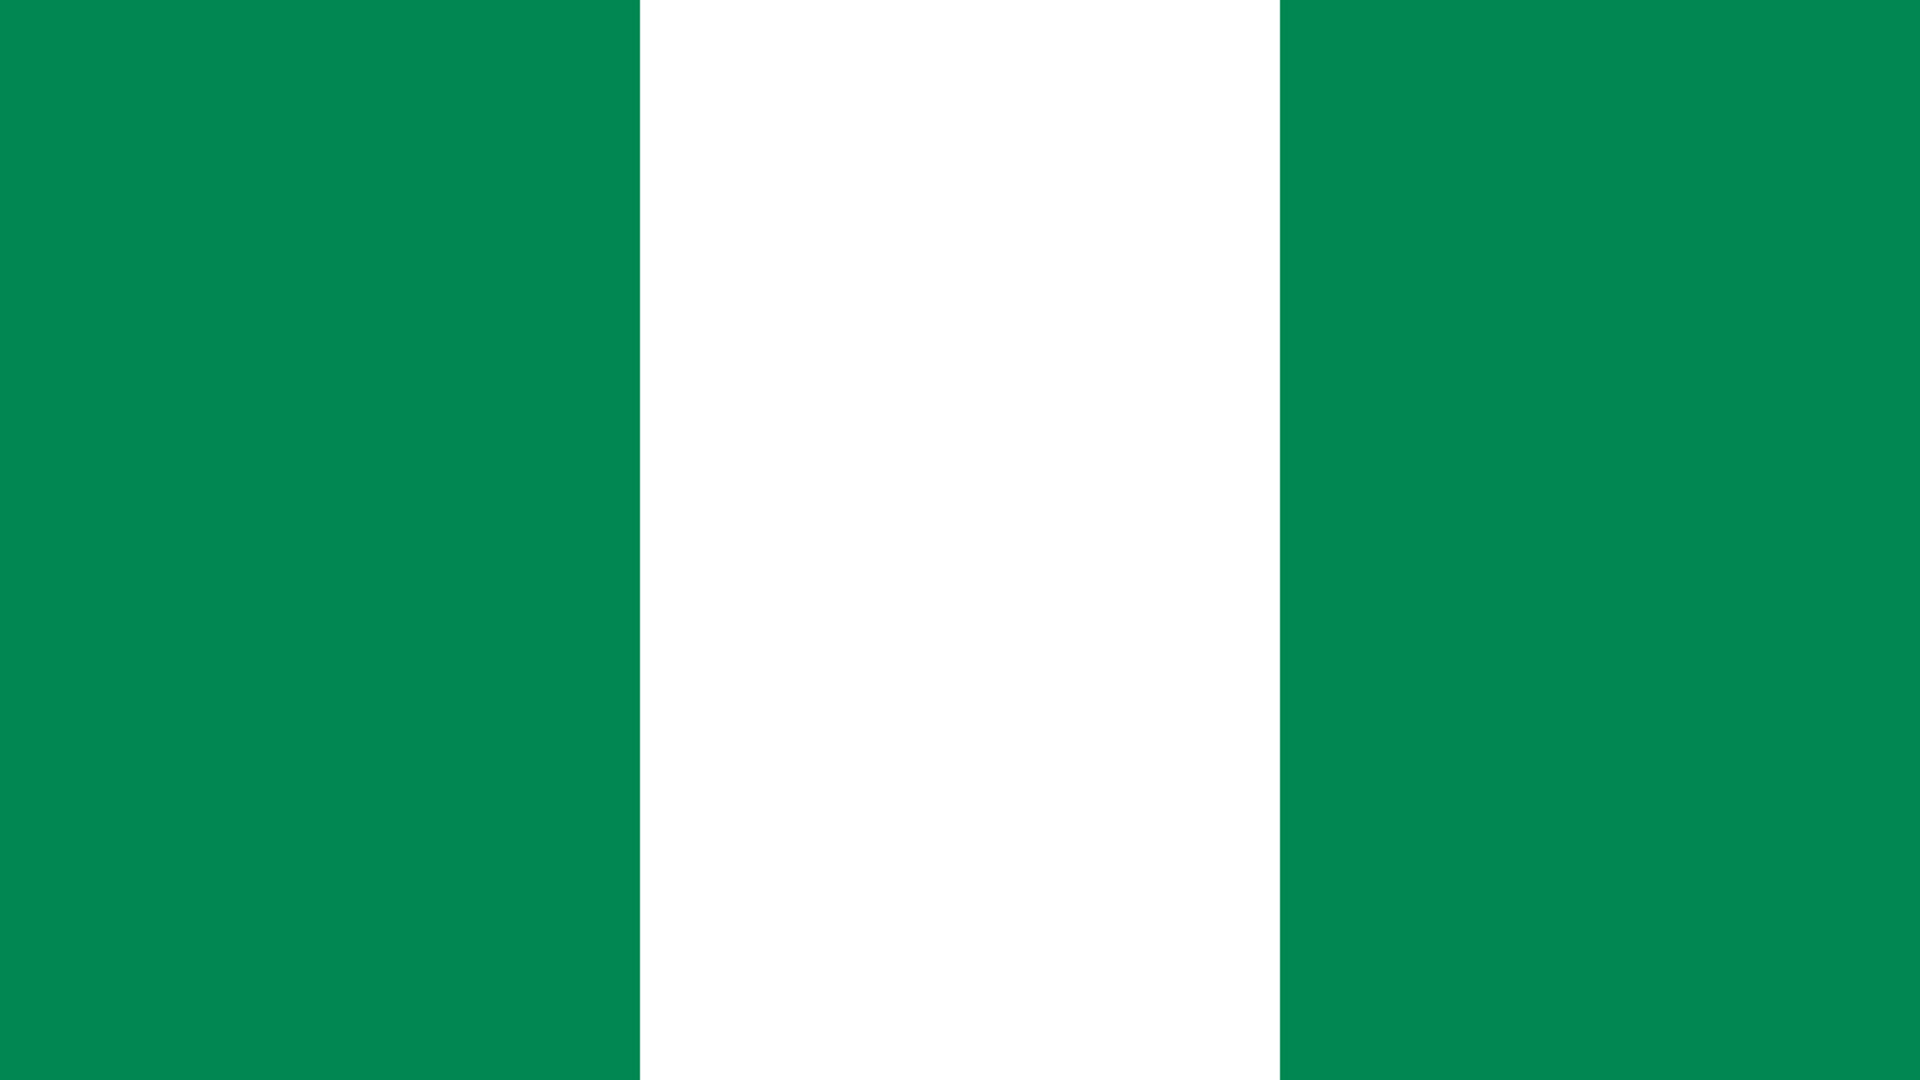 Cute Kitty Wallpapers Download Nigeria Flag Wallpaper High Definition High Quality